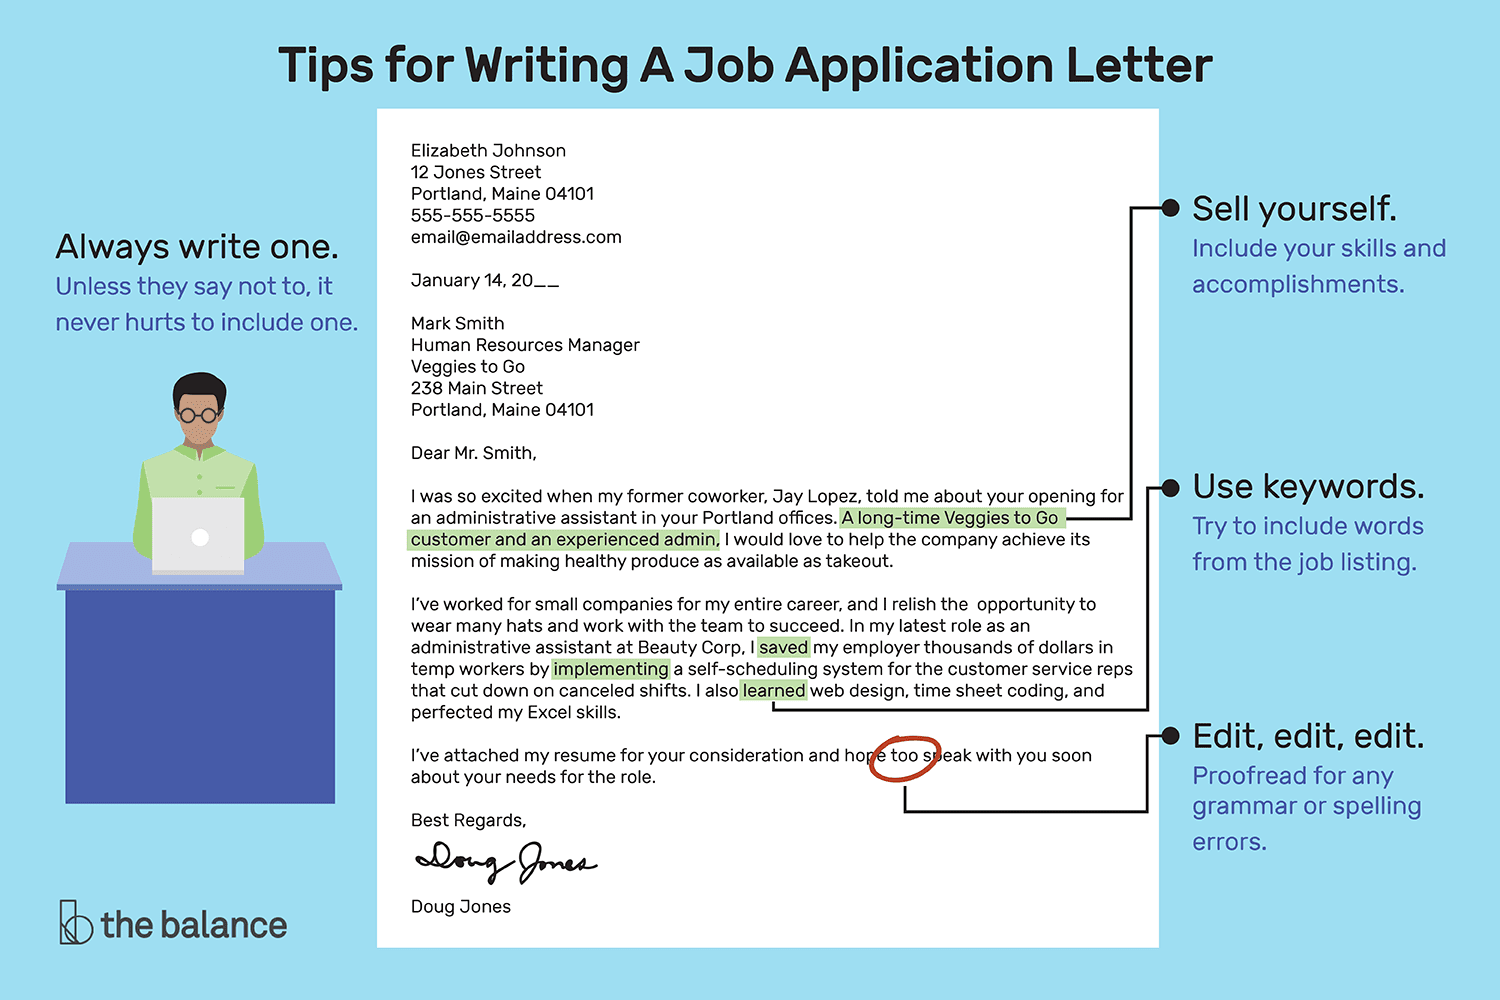 How To Write A Job Application Letter With Samples